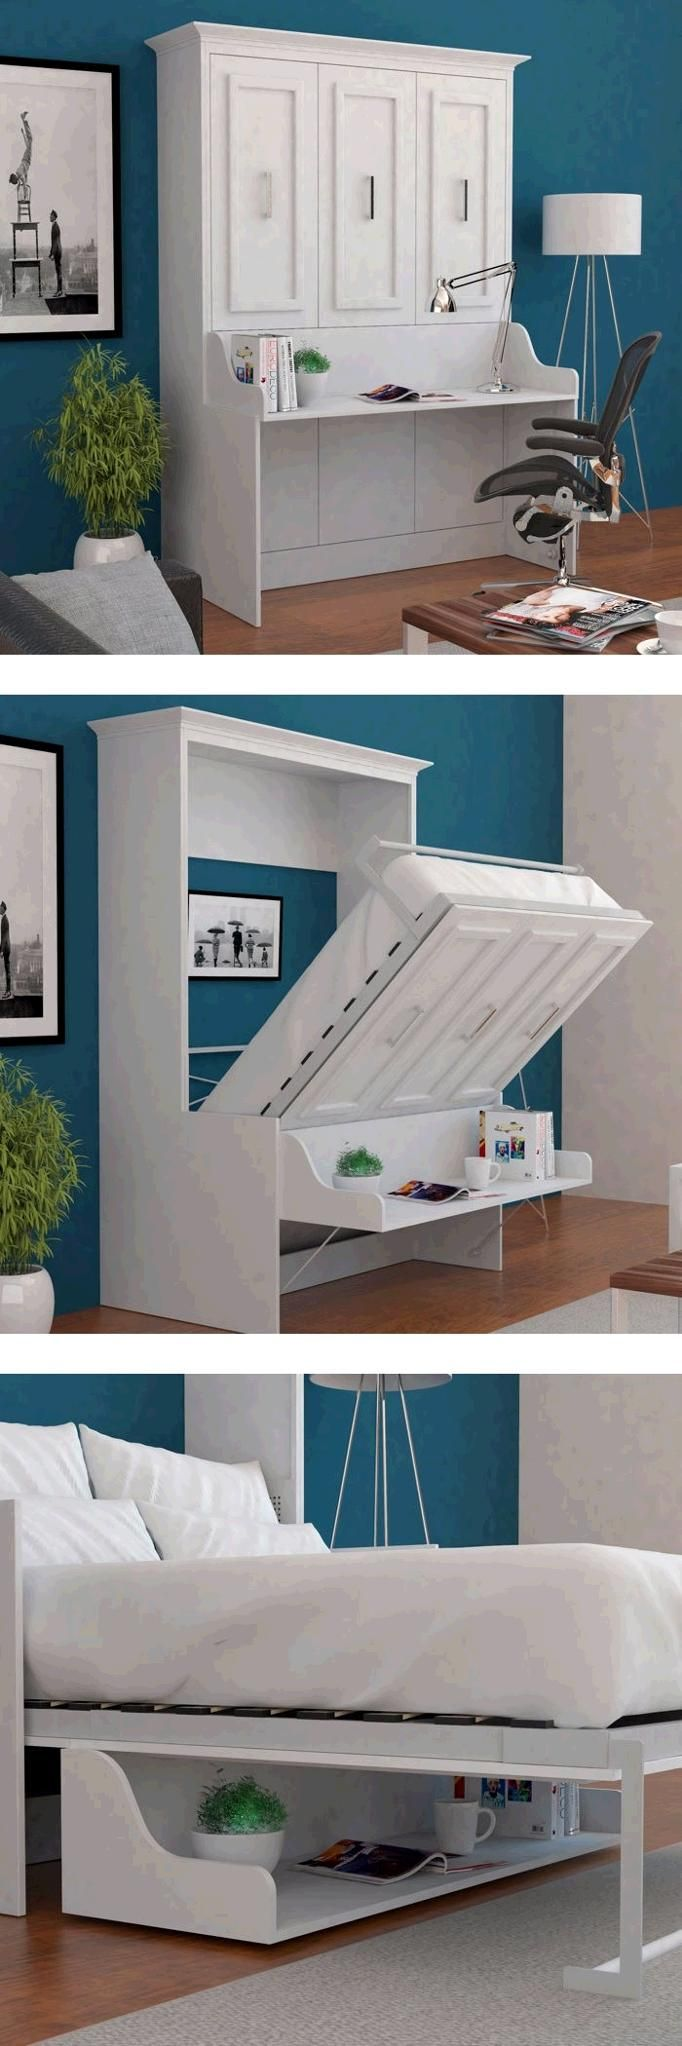 Best 25 murphy beds ideas on pinterest spare room bed ideas the porter full wall bed with a desk built in is a truly unique and versatile amipublicfo Choice Image